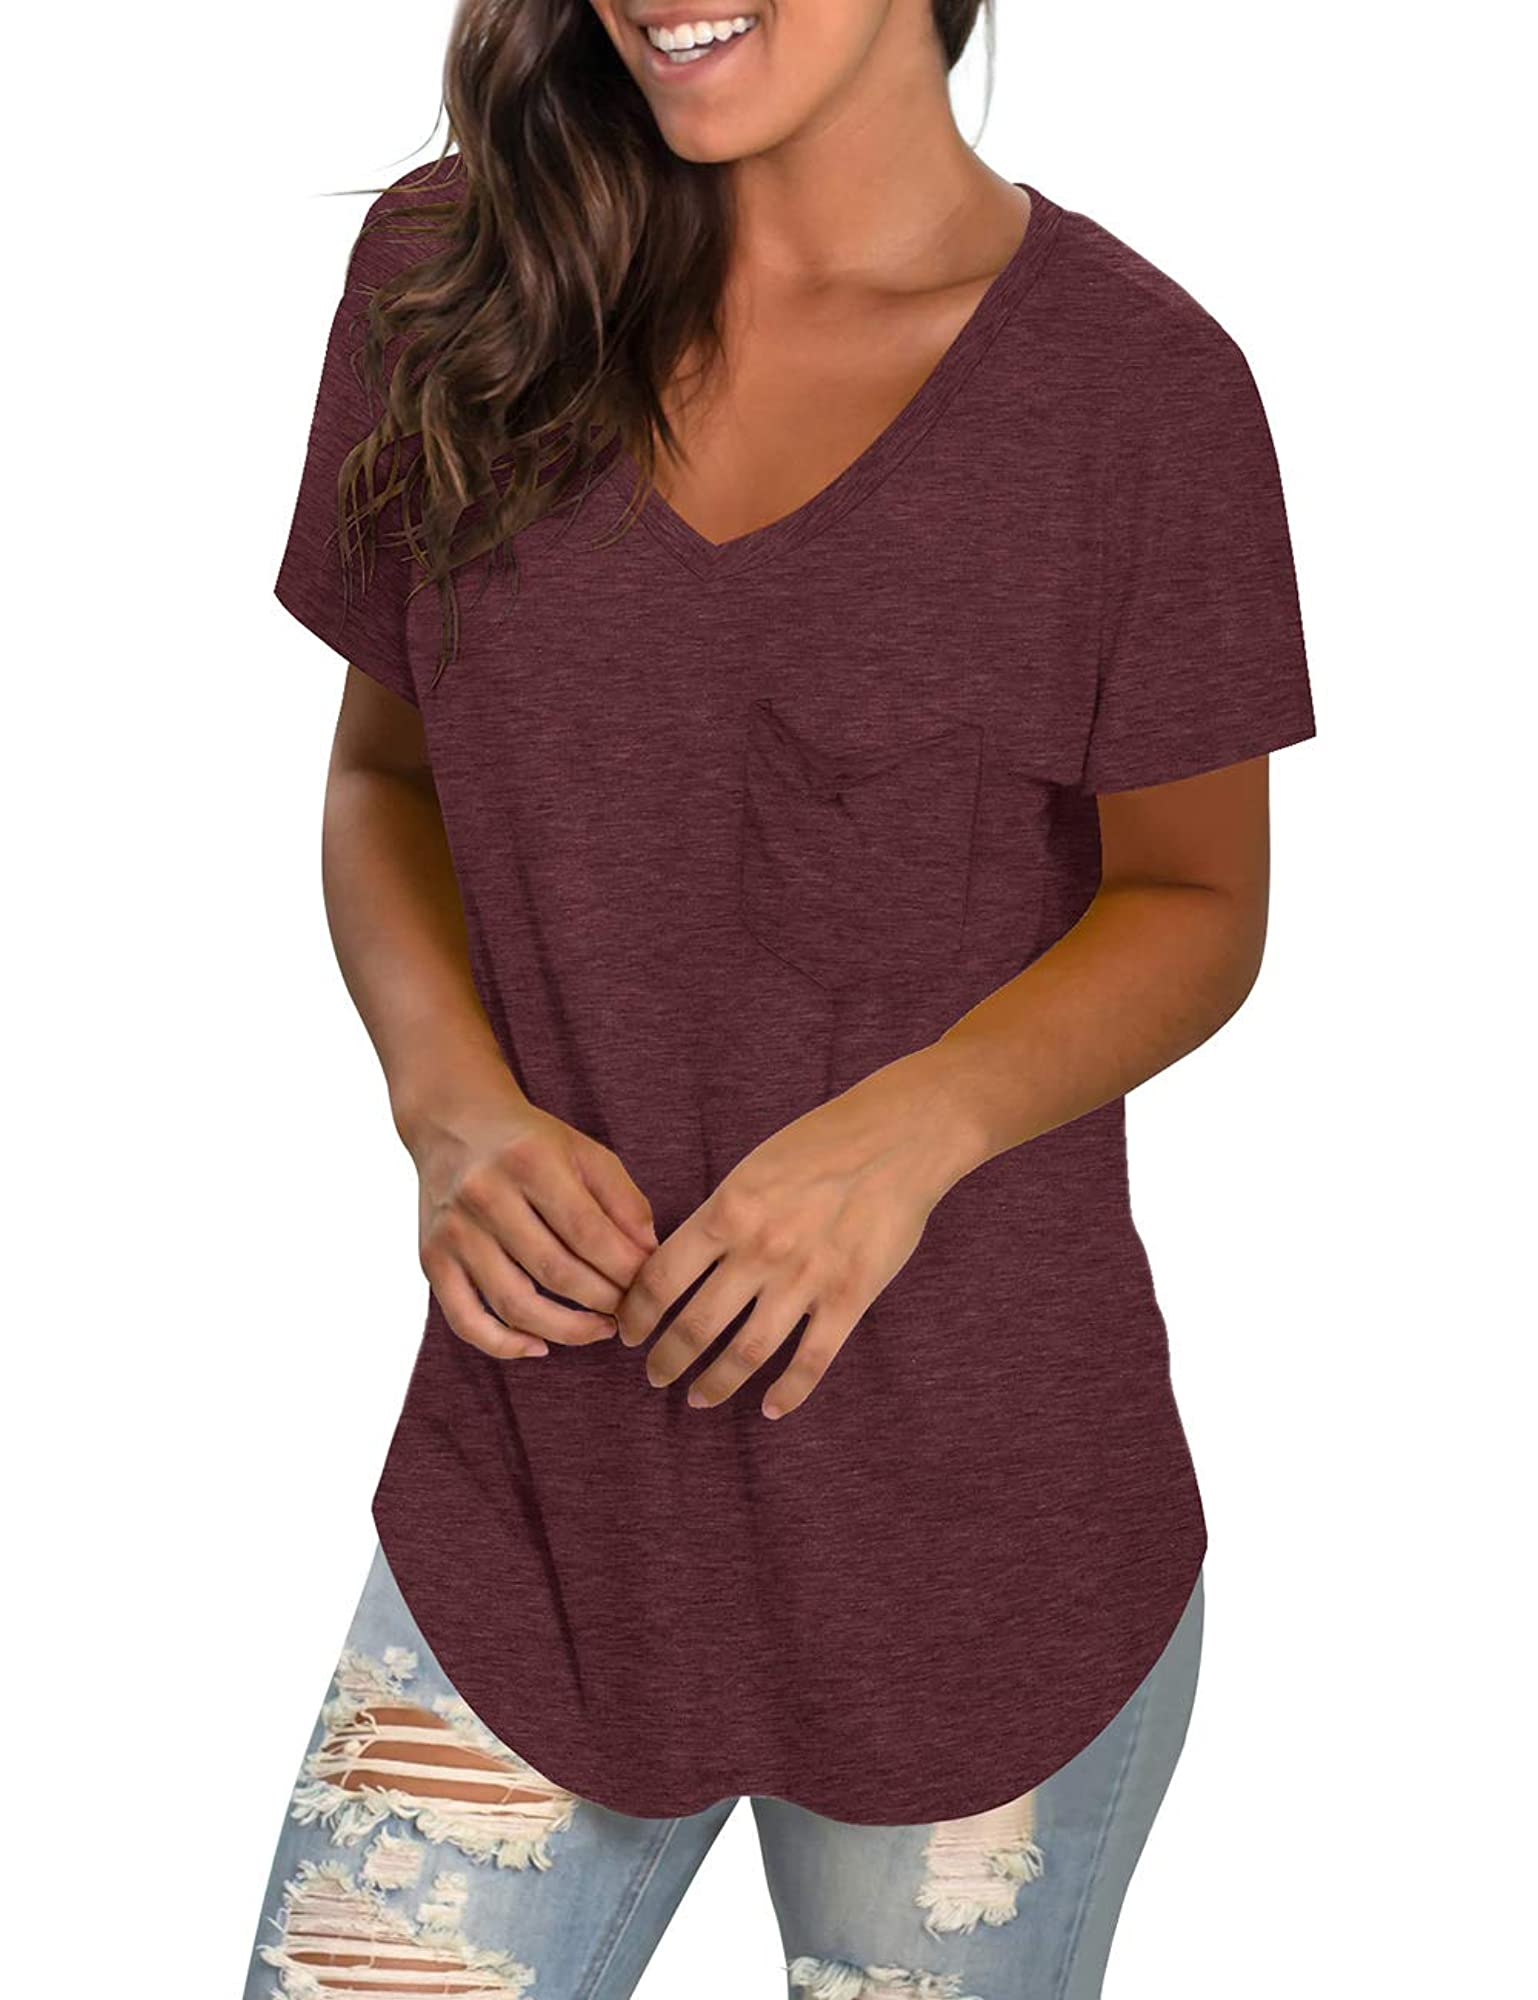 Women's Loose Fit V-Neck Short Sleeve T-Shirts With Pocket